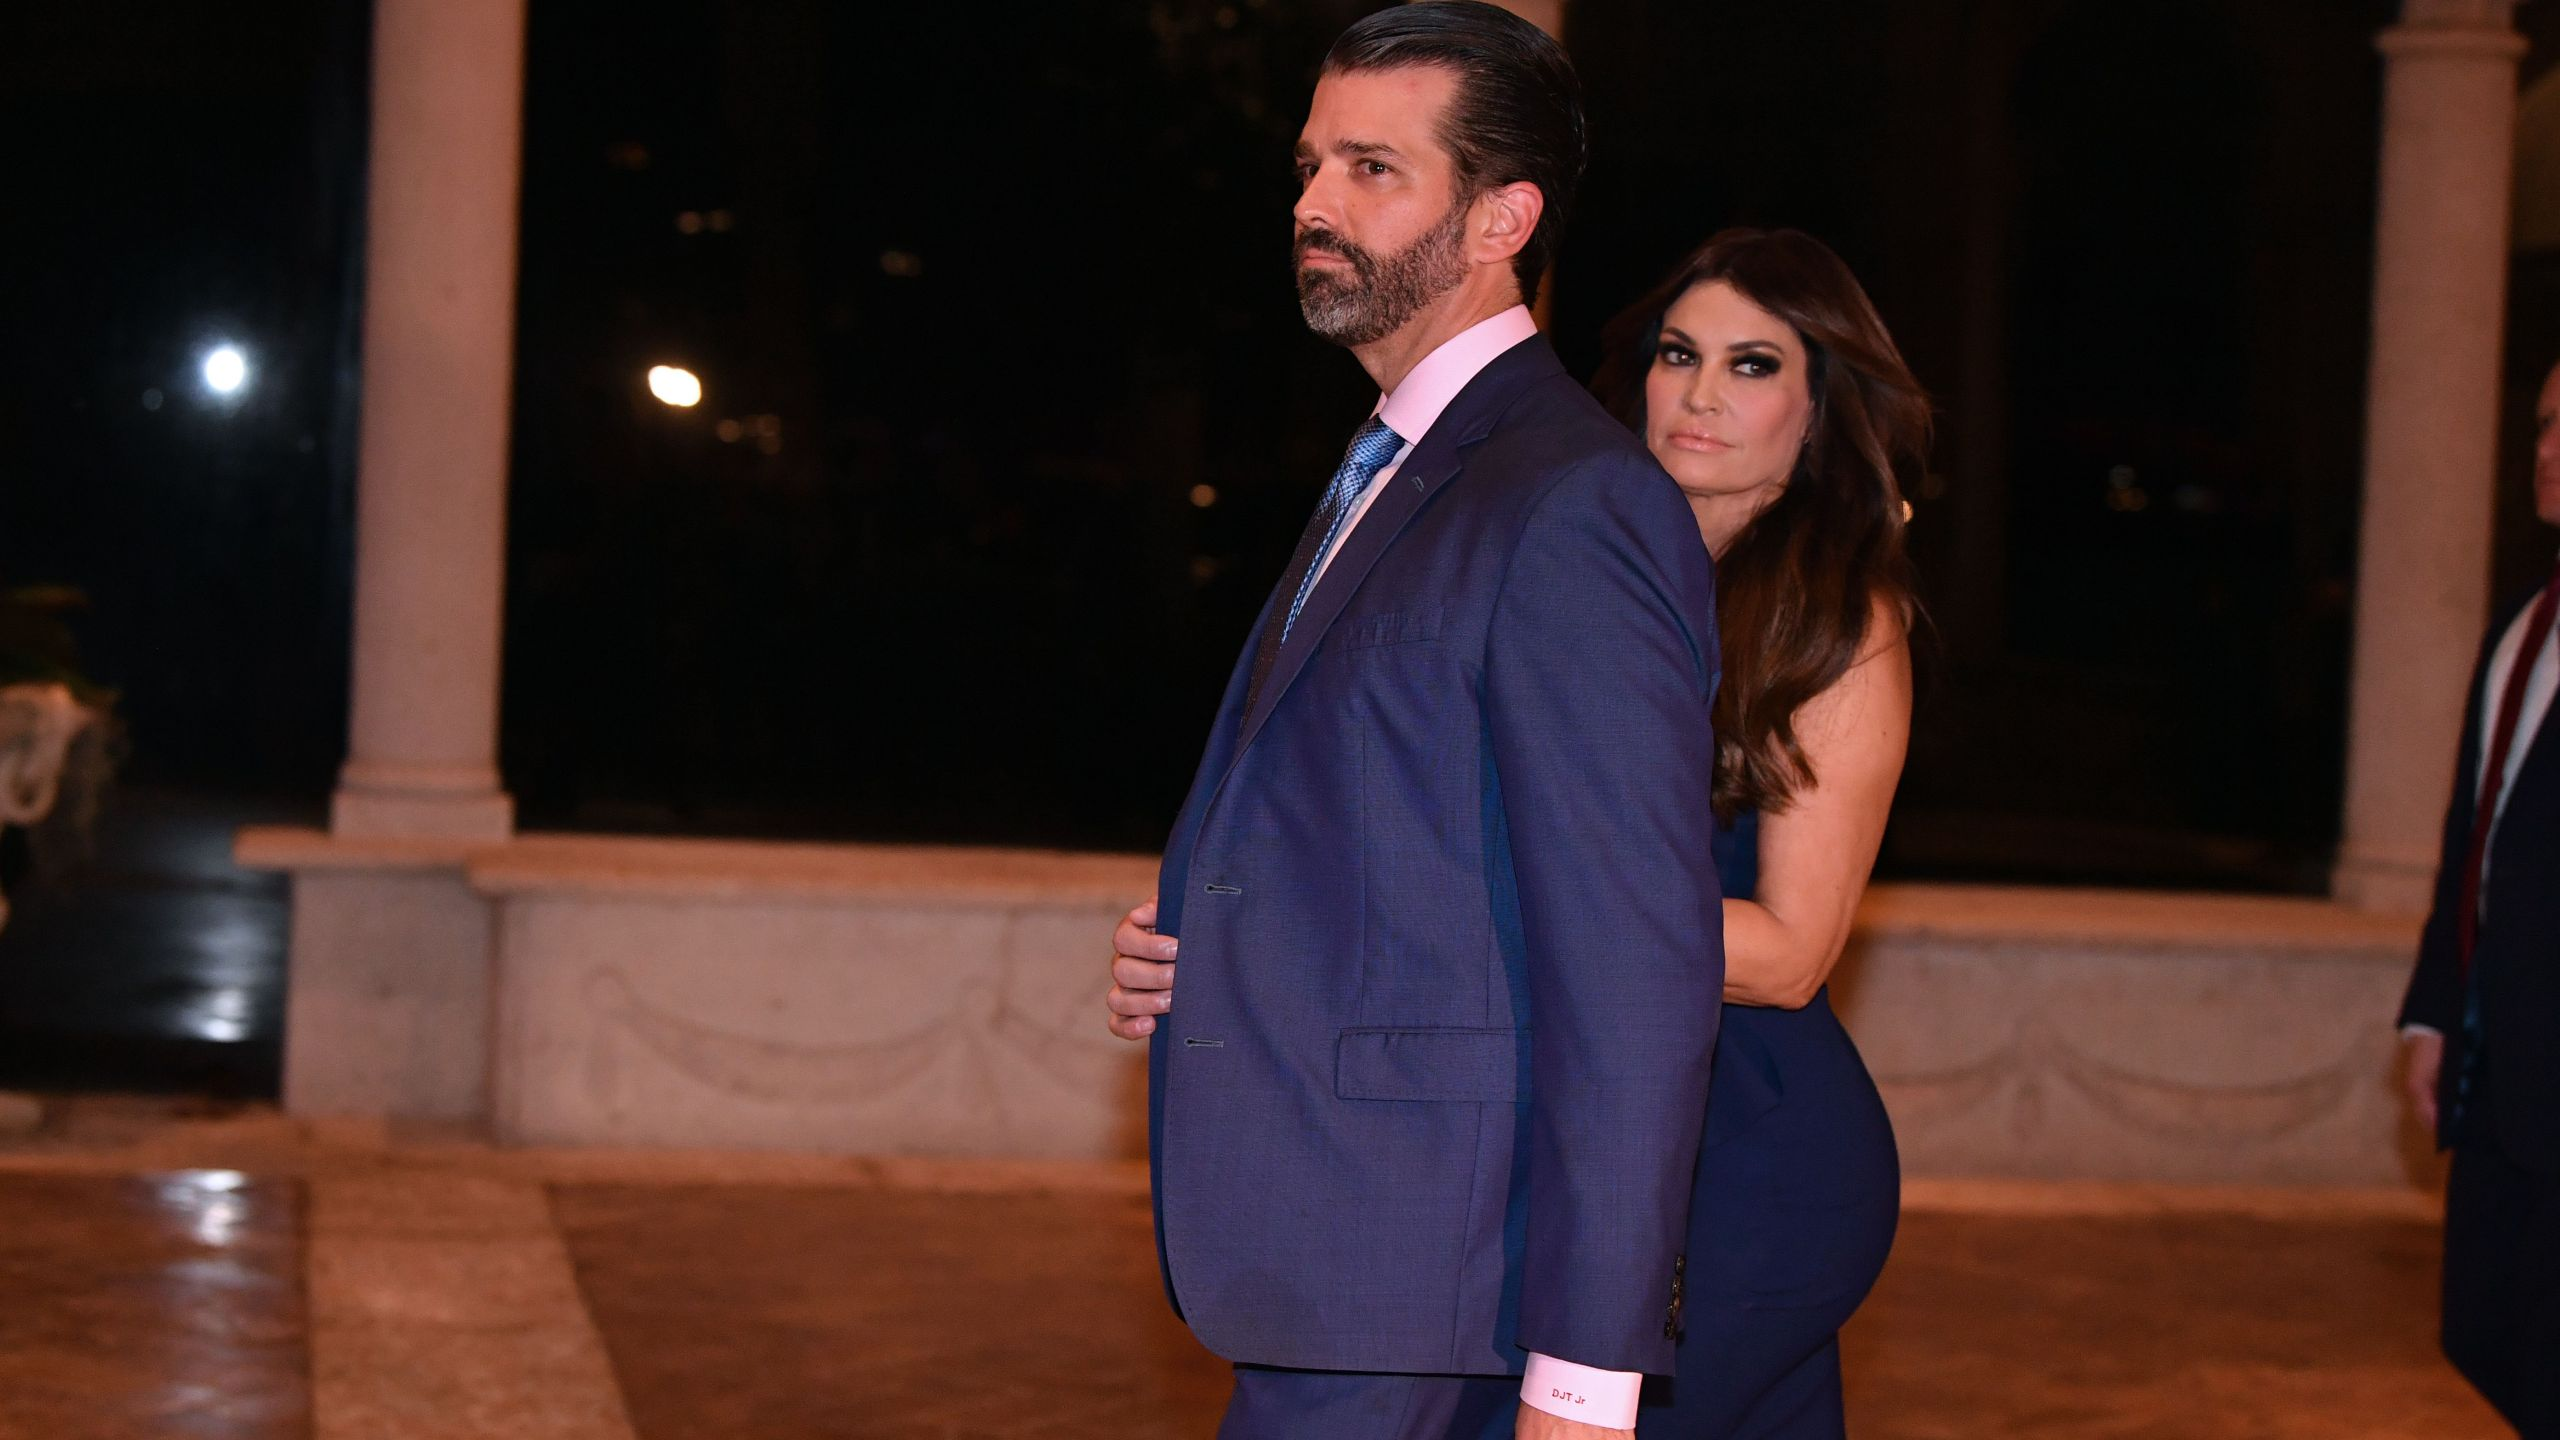 Donald Trump Jr and girlfriend Kimberly Guilfoyle arrive for a Christmas Eve dinner with his family at Mar-A-Lago in Palm Beach, Florida on December 24, 2019. (NICHOLAS KAMM/AFP via Getty Images)